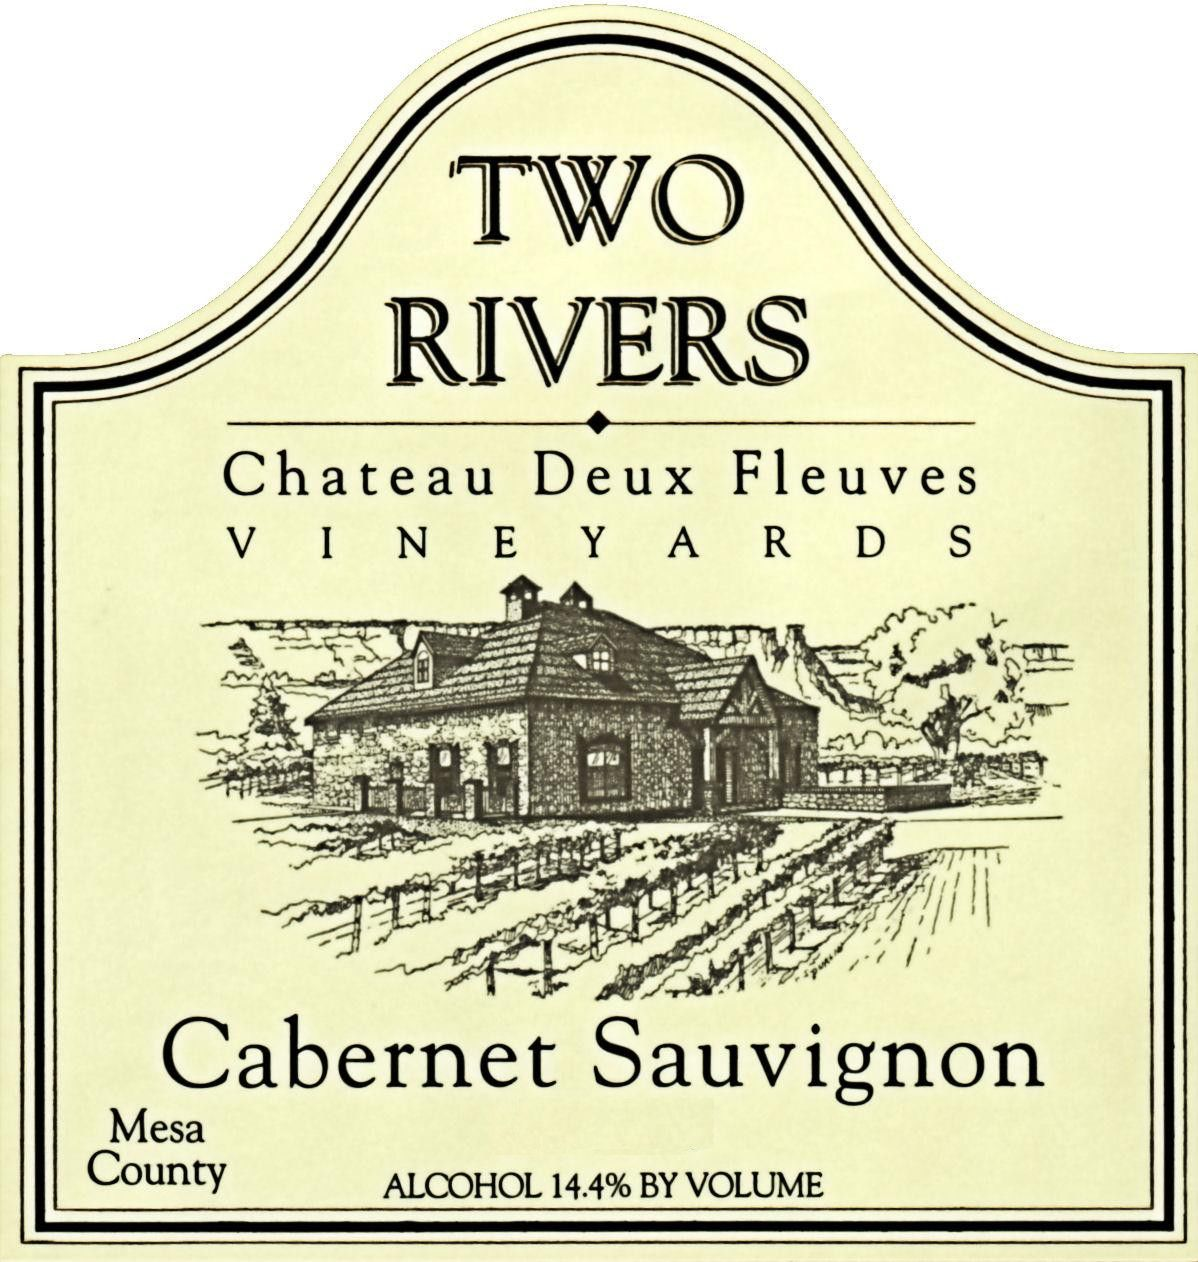 Two Rivers Winery and Chateau Mesa County Deux Fleuves Vineyards Cabernet Sauvignon 2013 Front Label